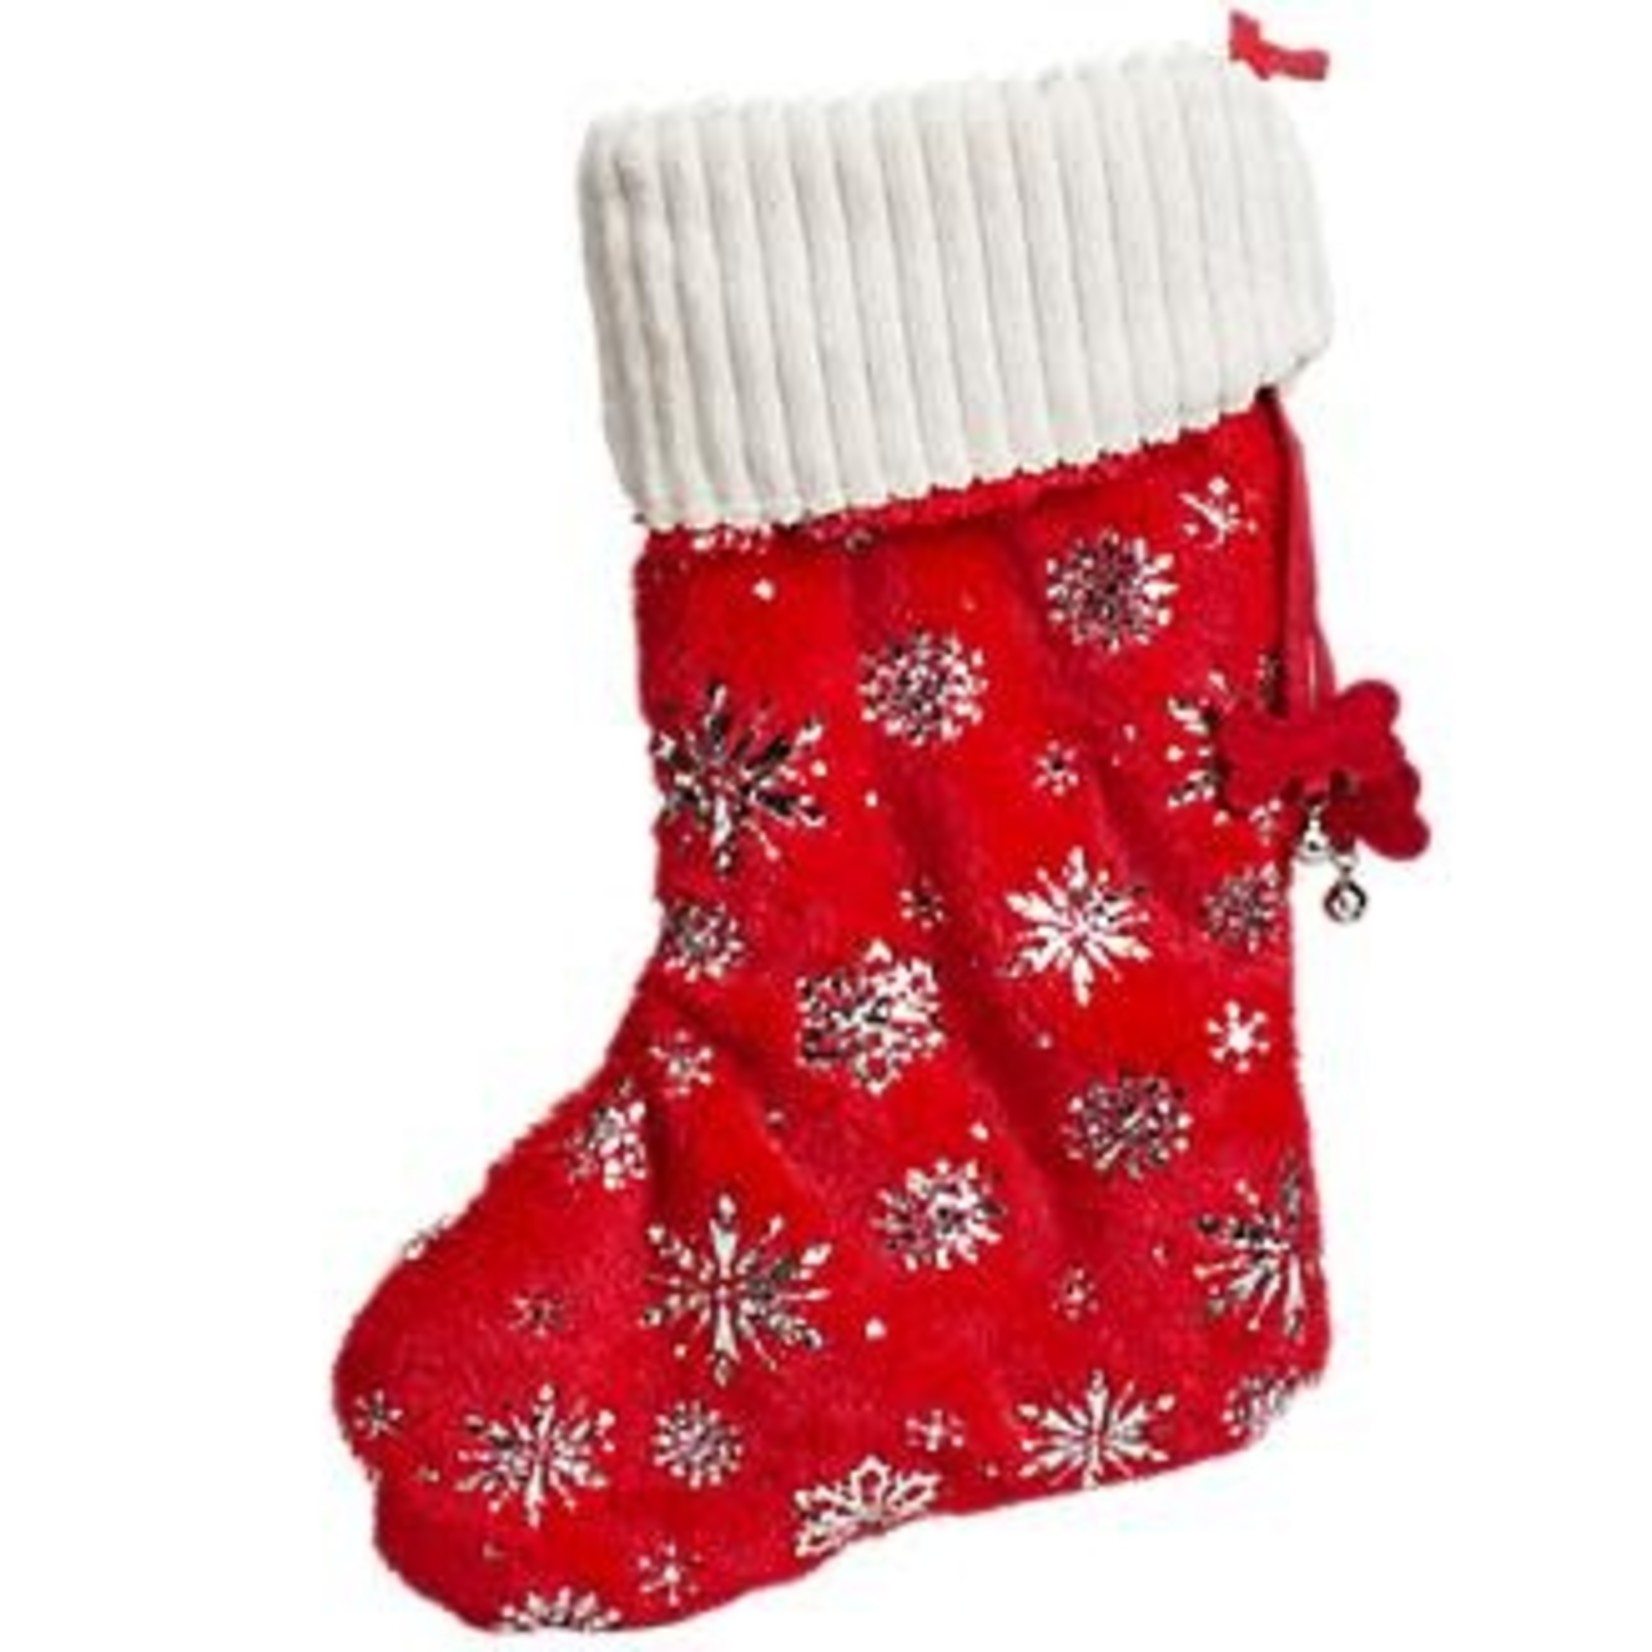 HuggleHounds HuggleHounds Dog Christmas Glitz Stocking